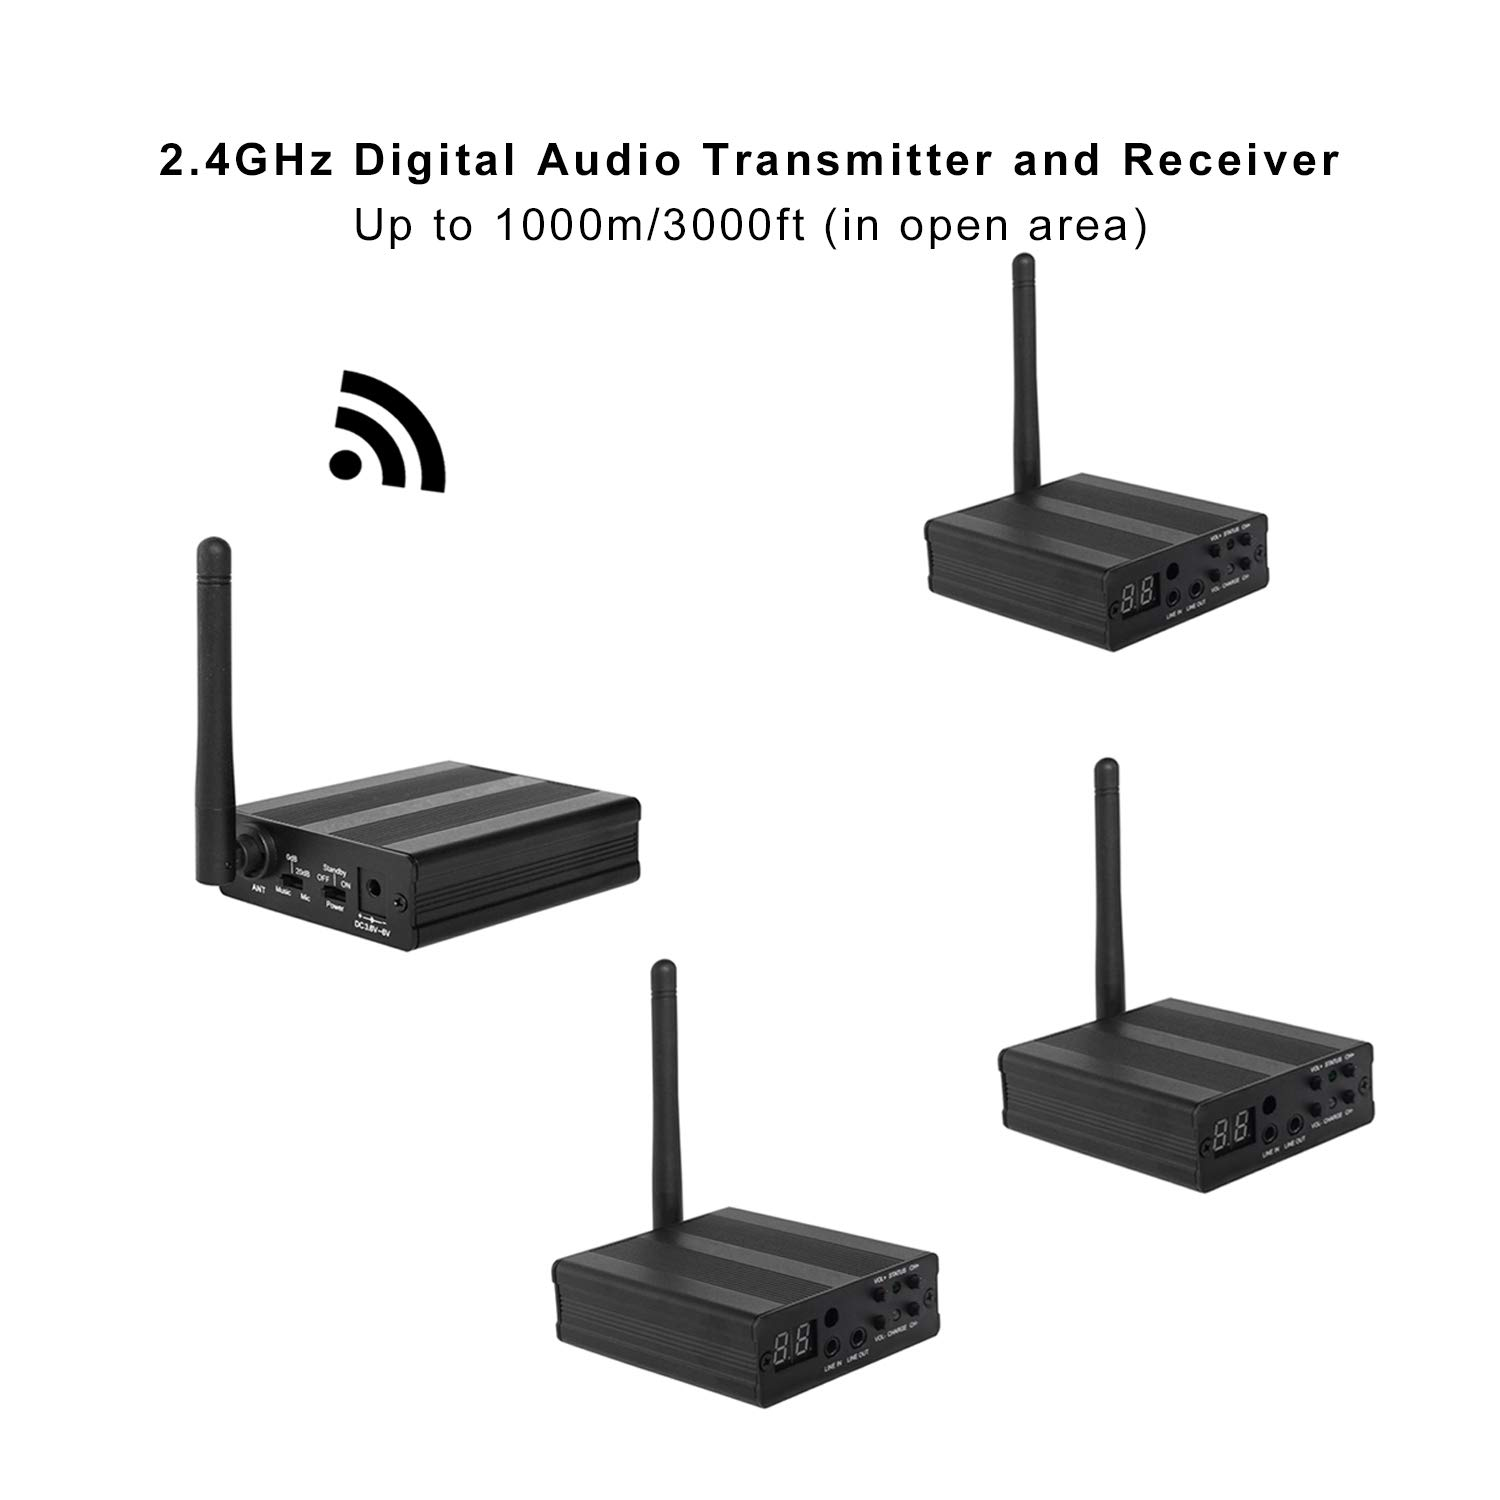 TP-WIRELESS 2.4GHz Long Range HiFi Audio Adapter, AUX/RCA for Music Streaming Stereo Sound System (3000ft 1 Transmitter and 3 Receiver)